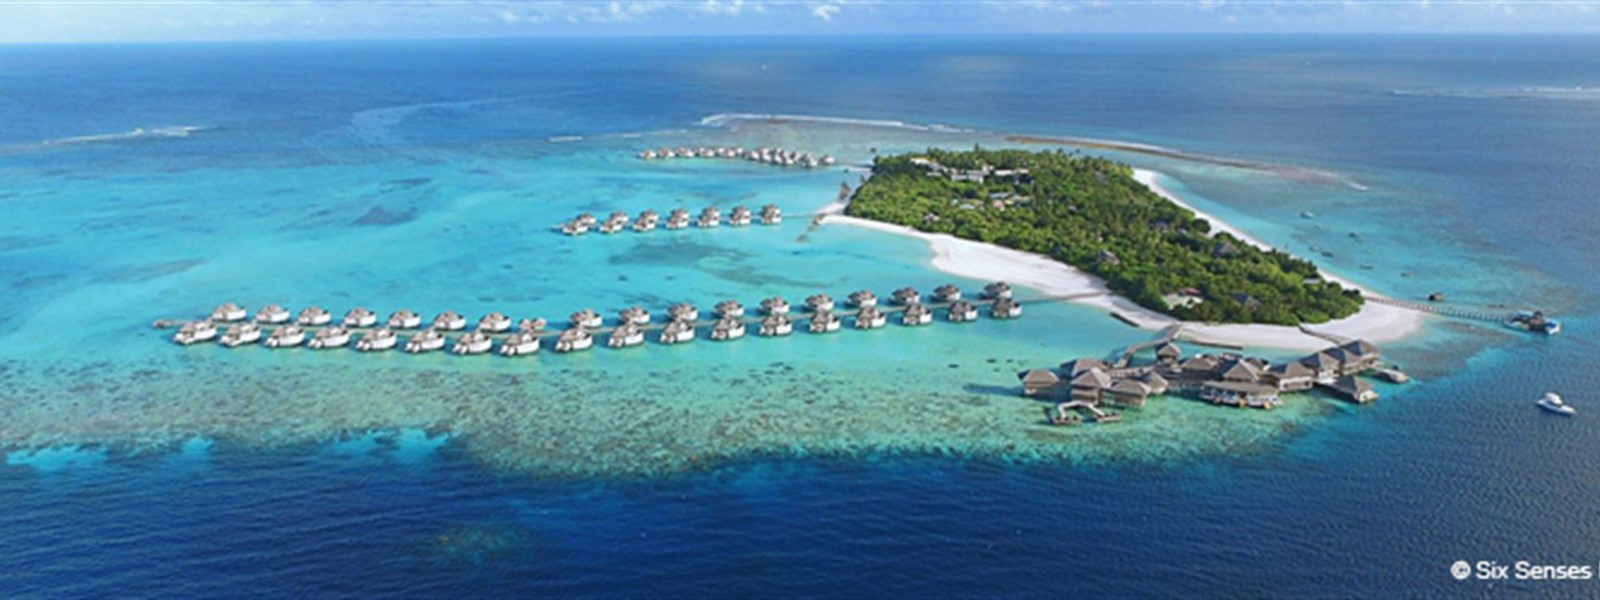 Picture of Six Senses Laamu in the Maldives, showing an aerial view of the atoll.